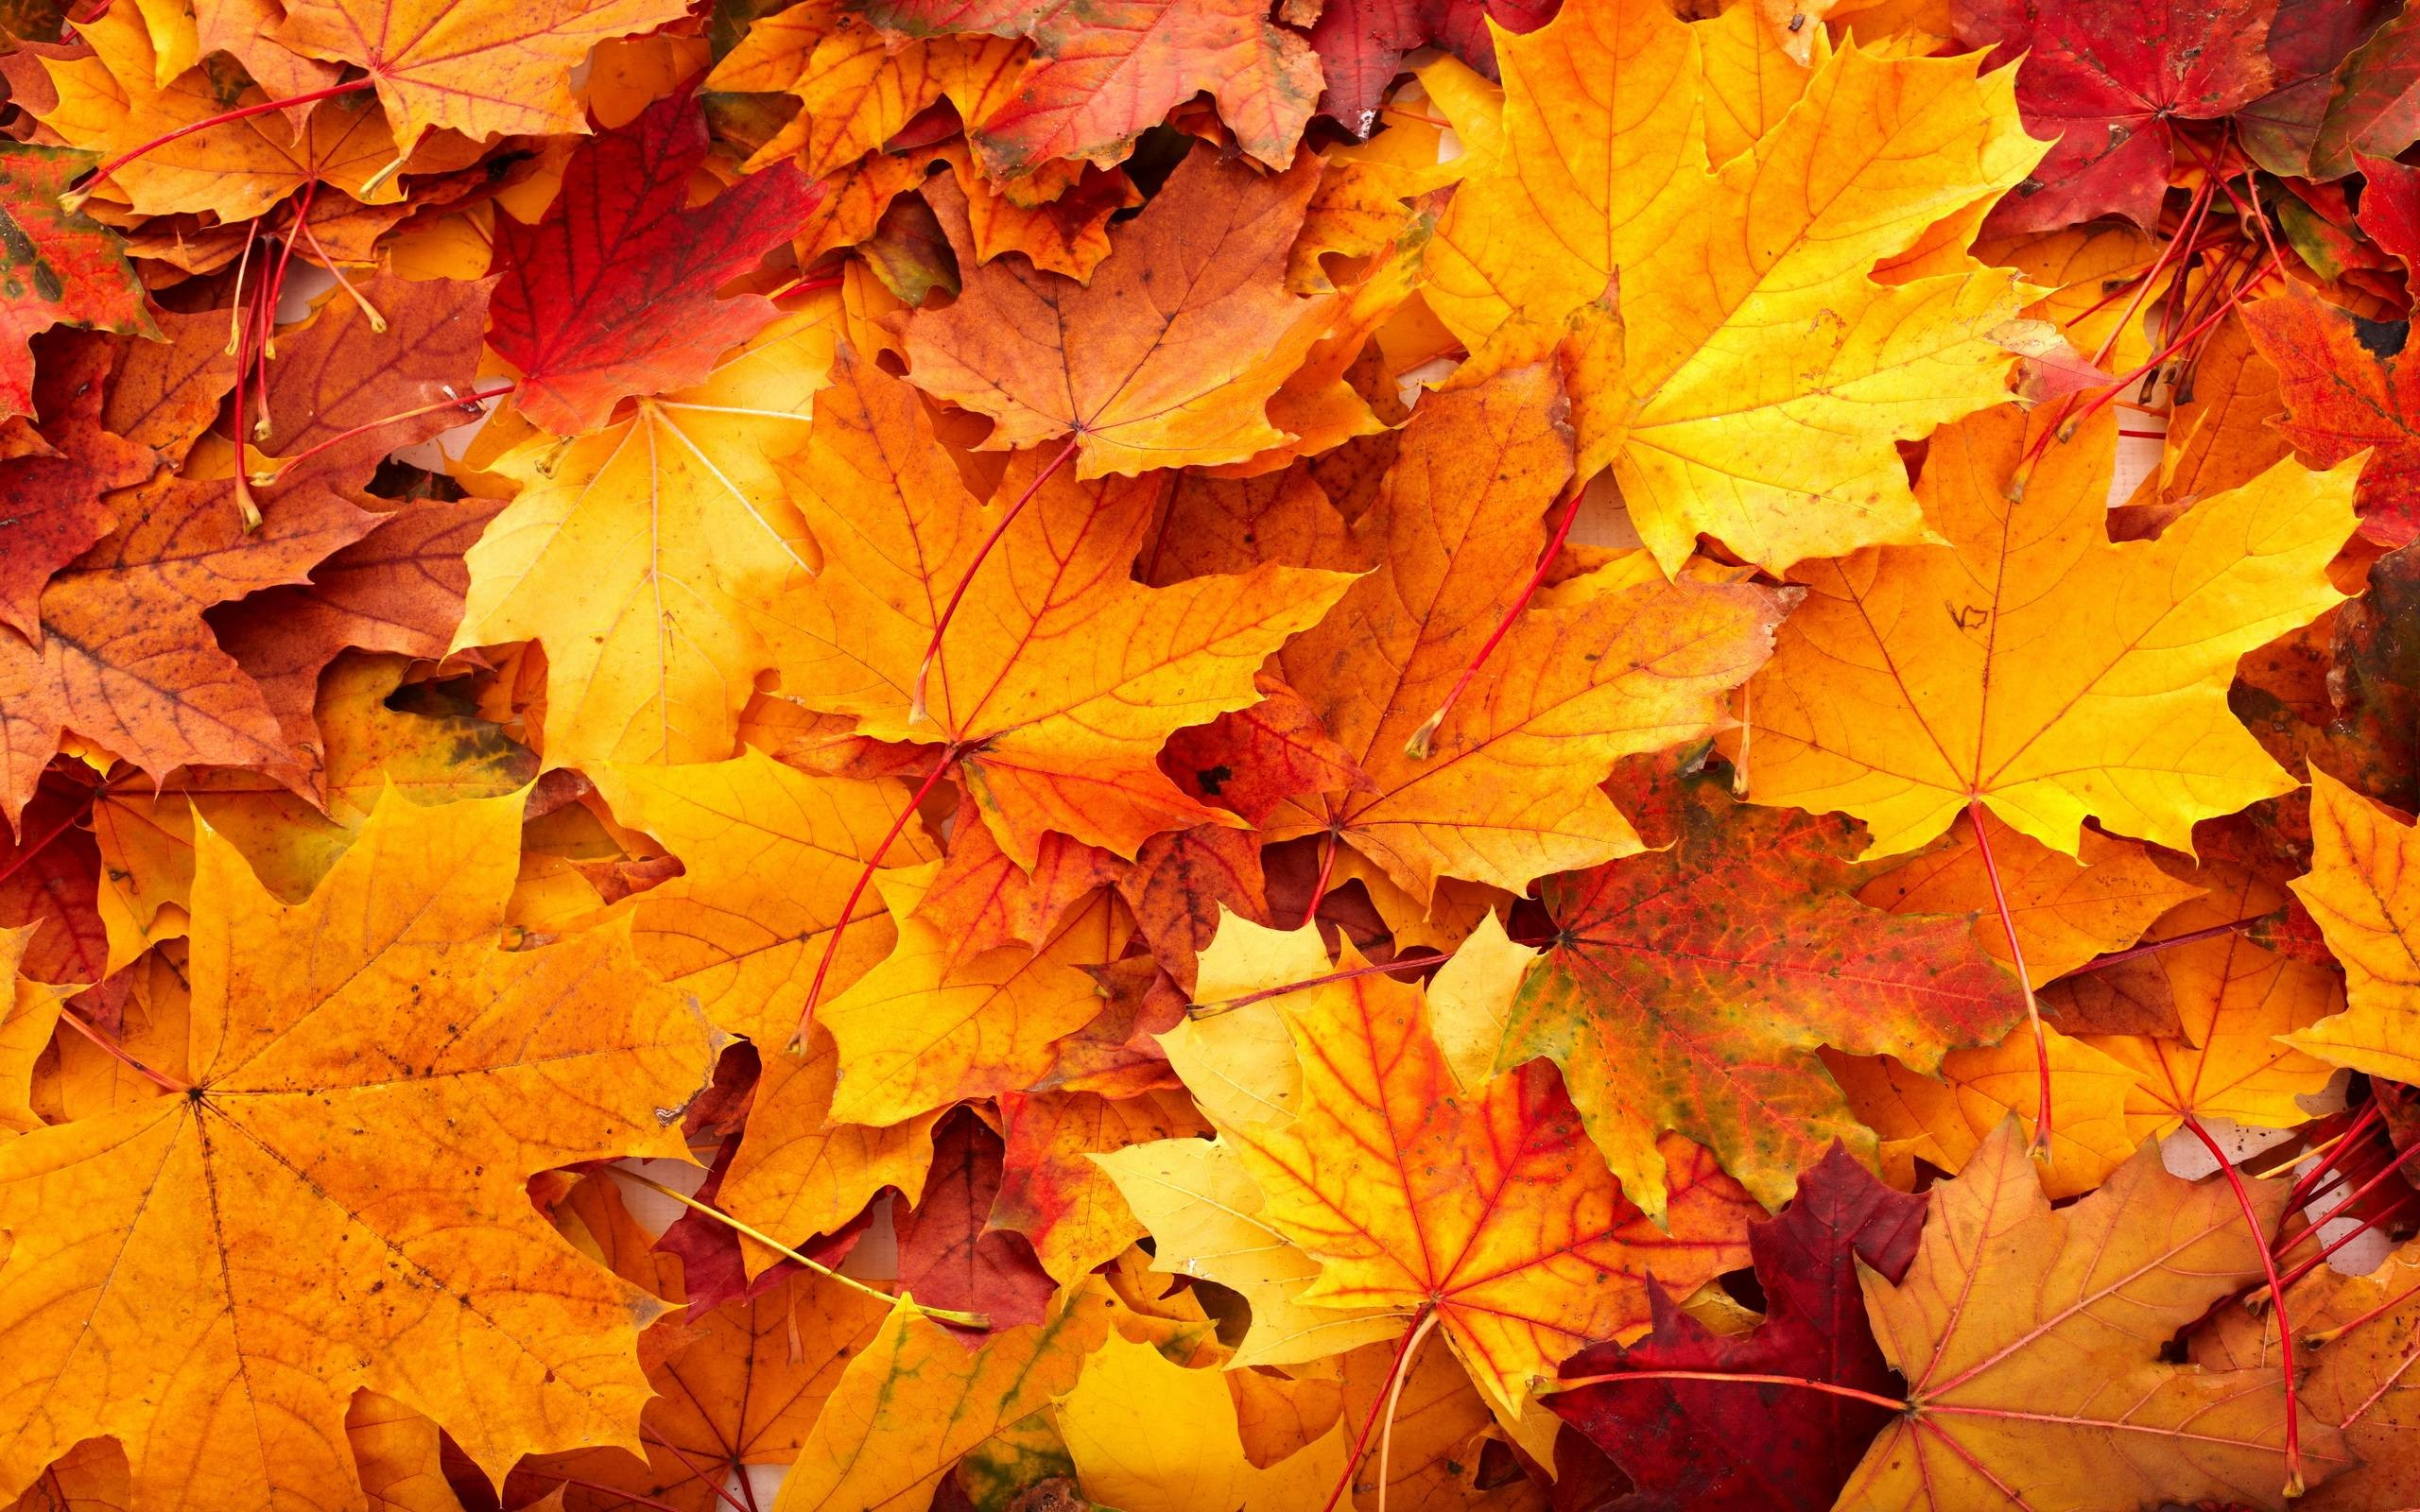 Fall Harvest Iphone Wallpaper Leaf Background 183 ① Download Free Stunning High Resolution